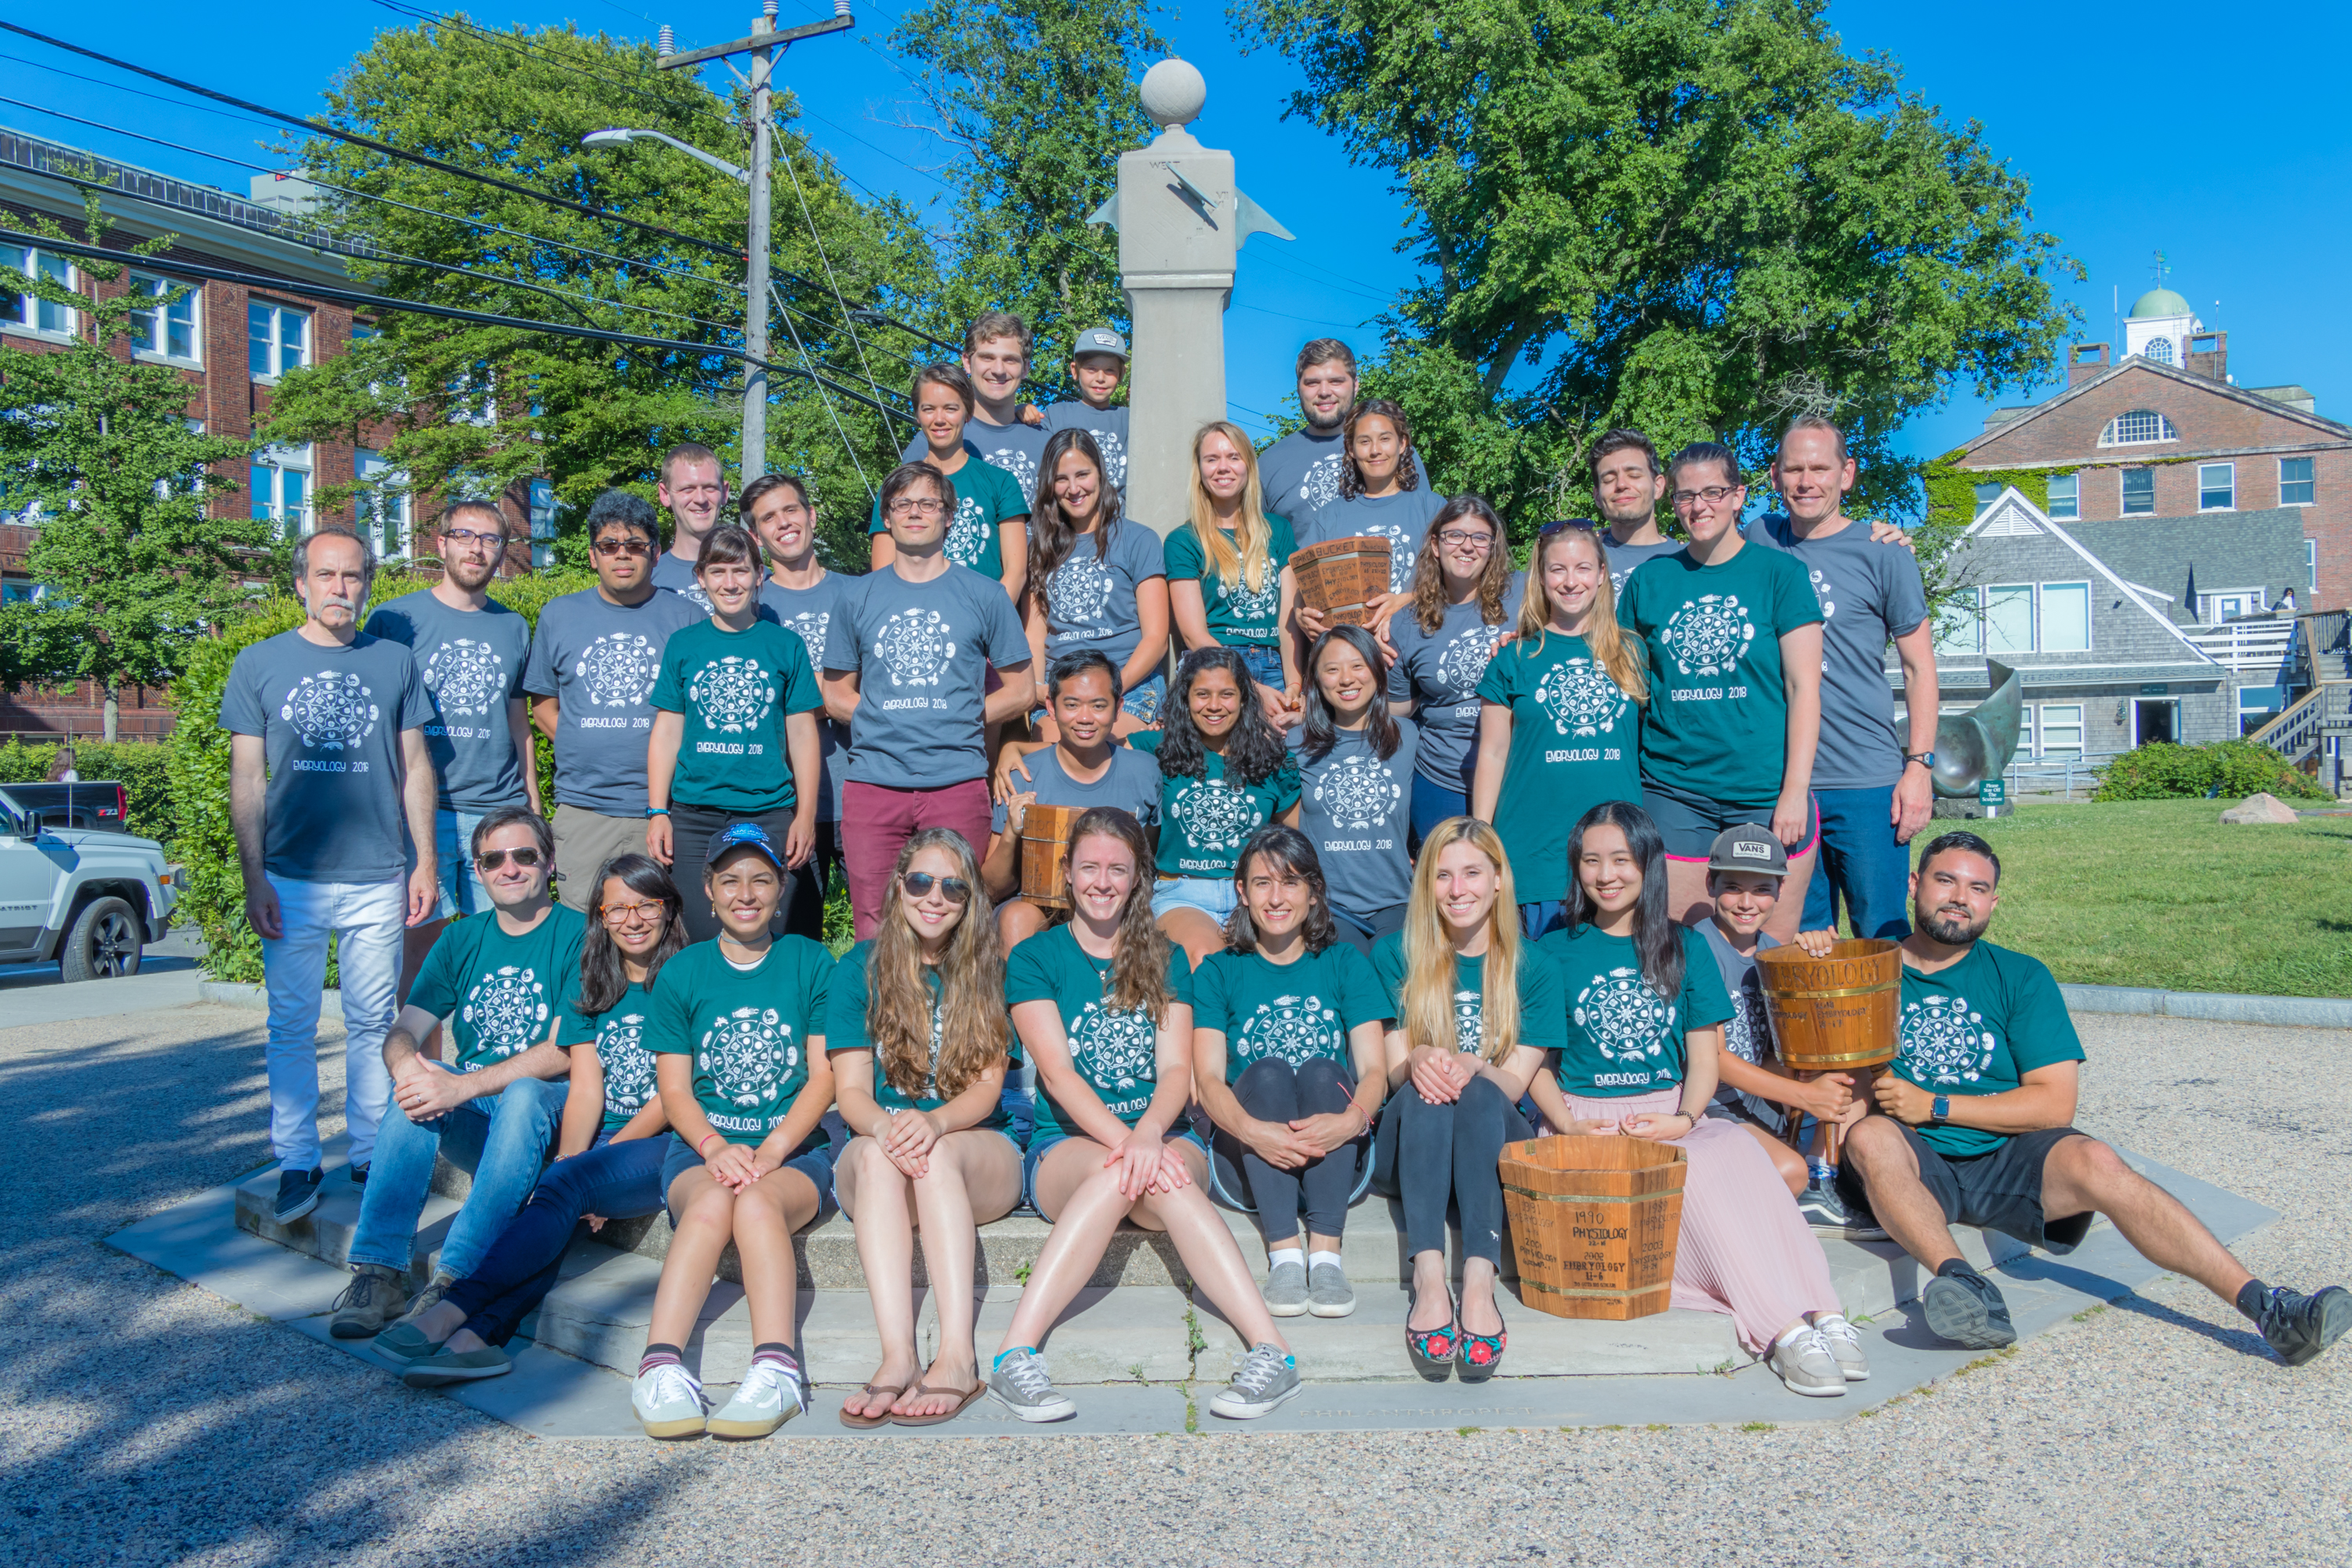 Embryology Course 2018 class photo, taken at the Waterfront Park in Woods Hole.